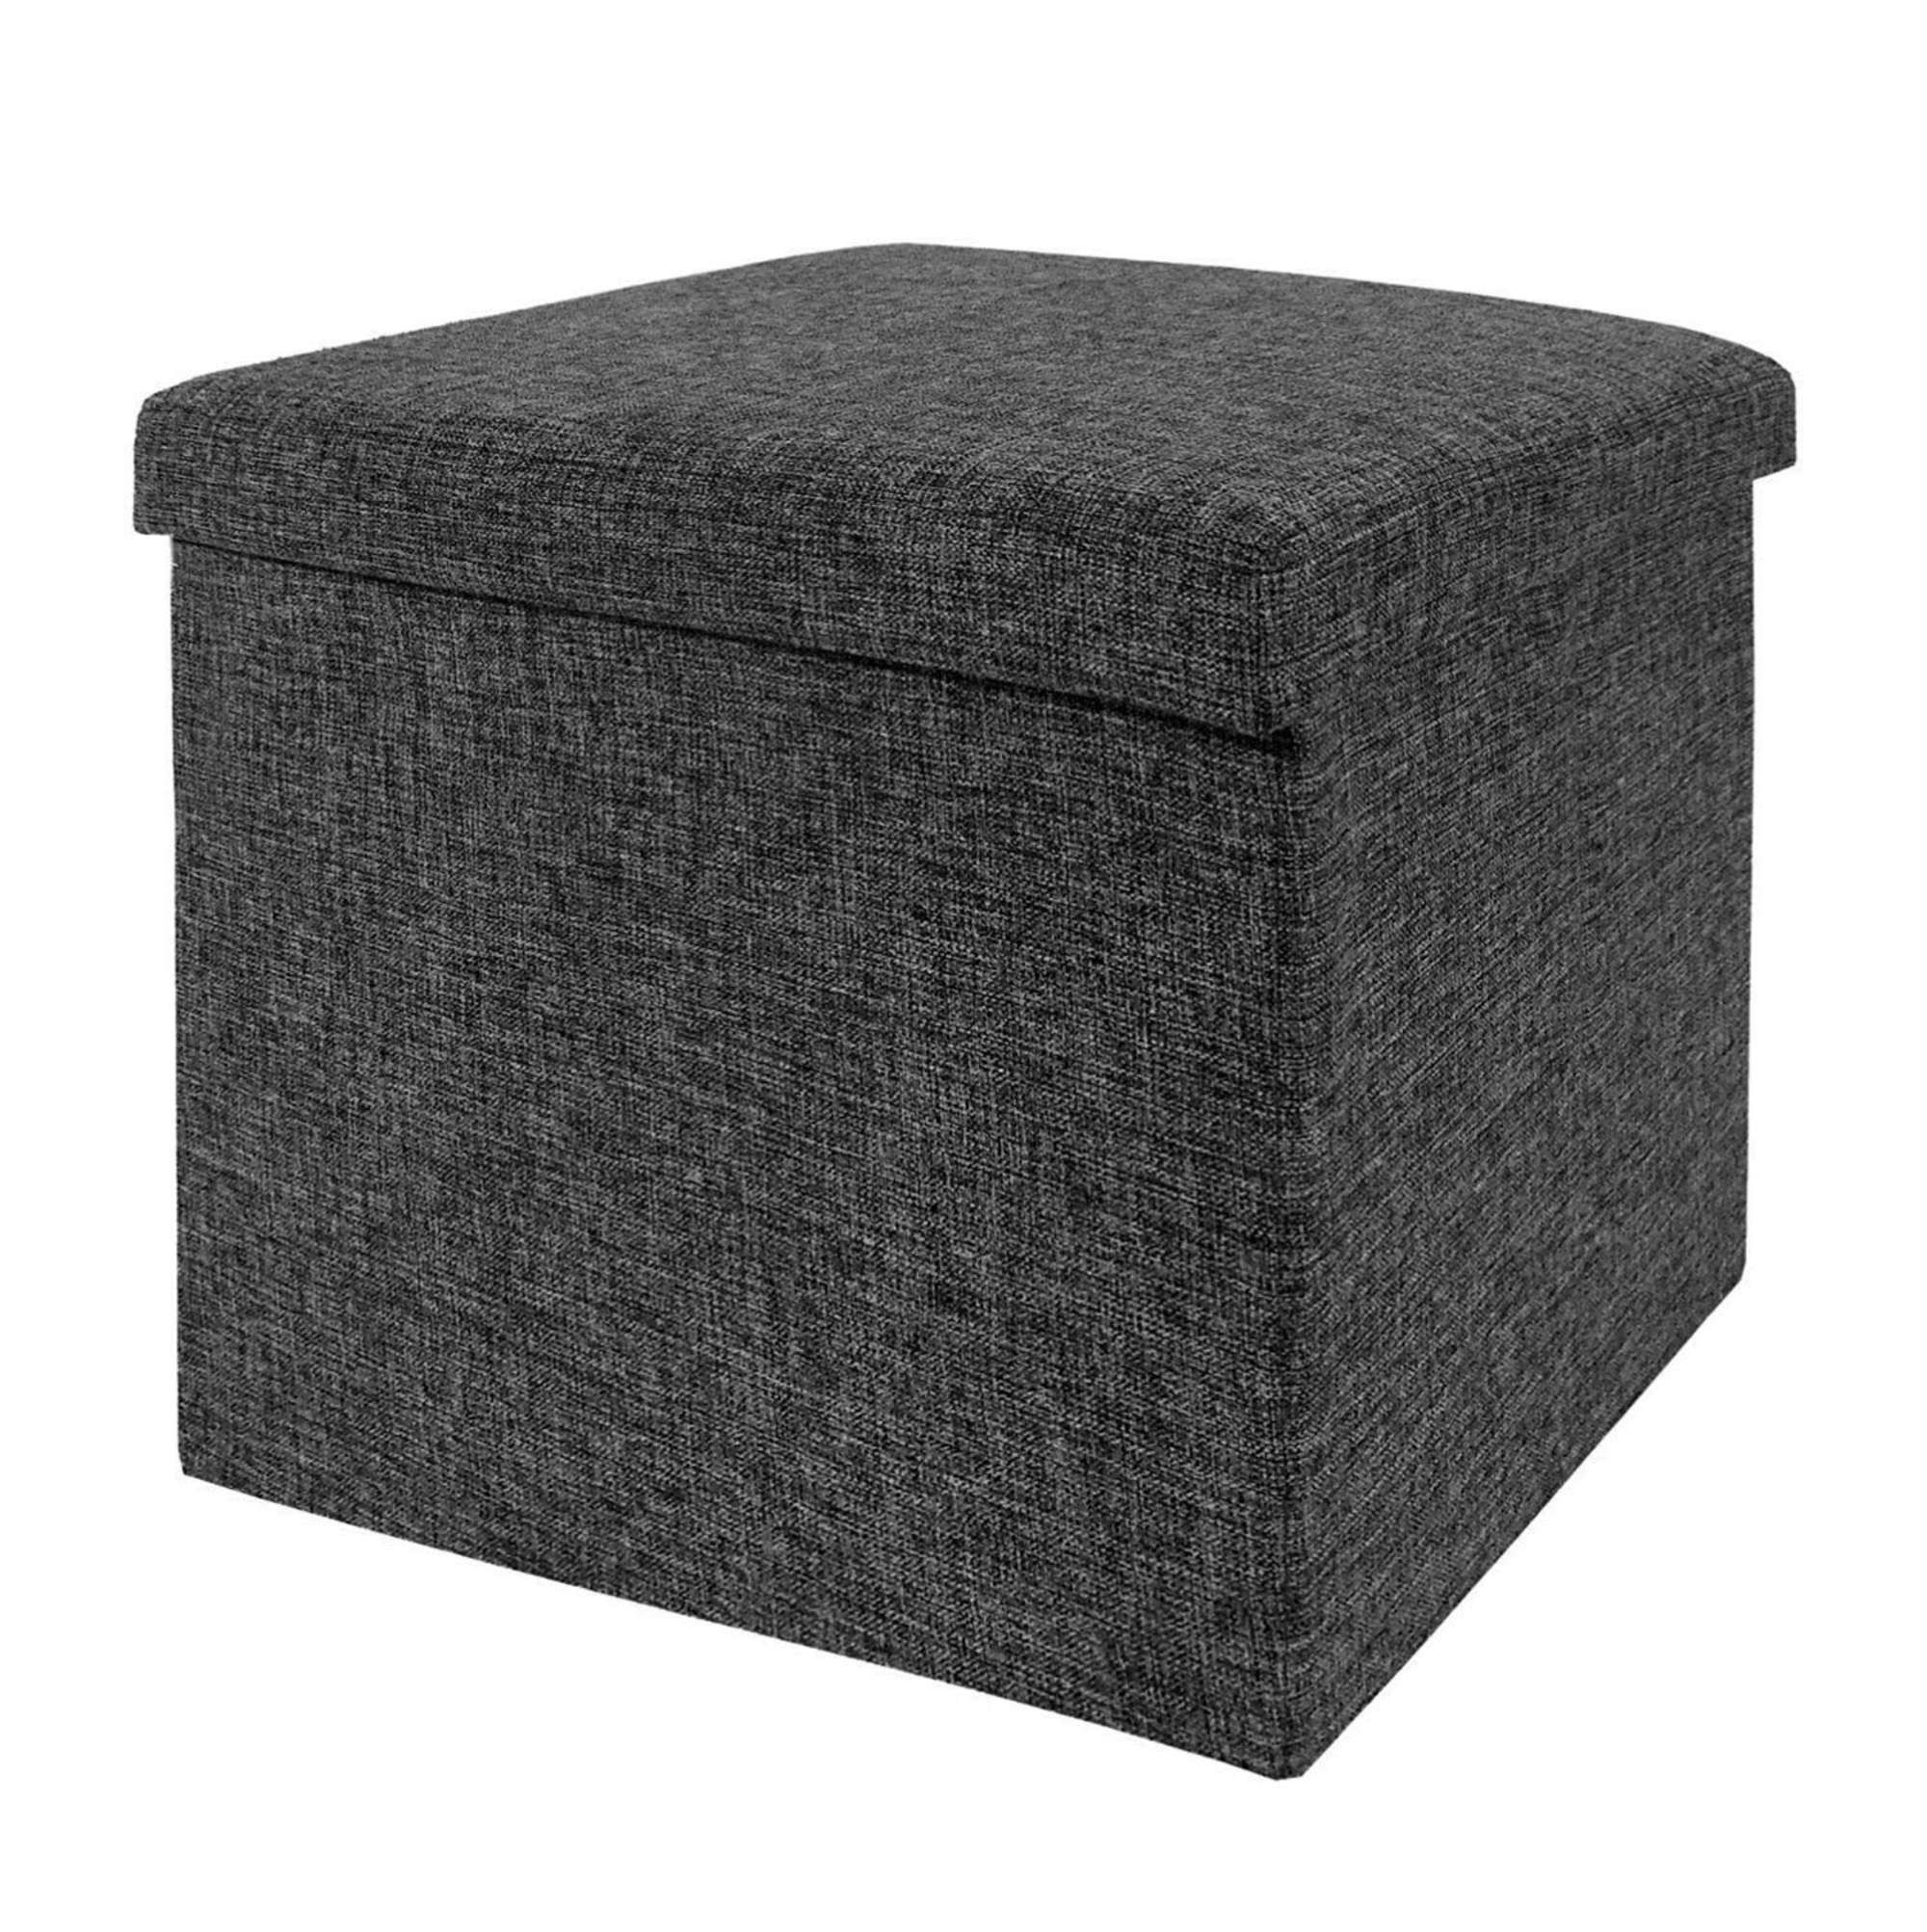 Foldable Storage Ottoman, Charcoal Gray by Seville Classics